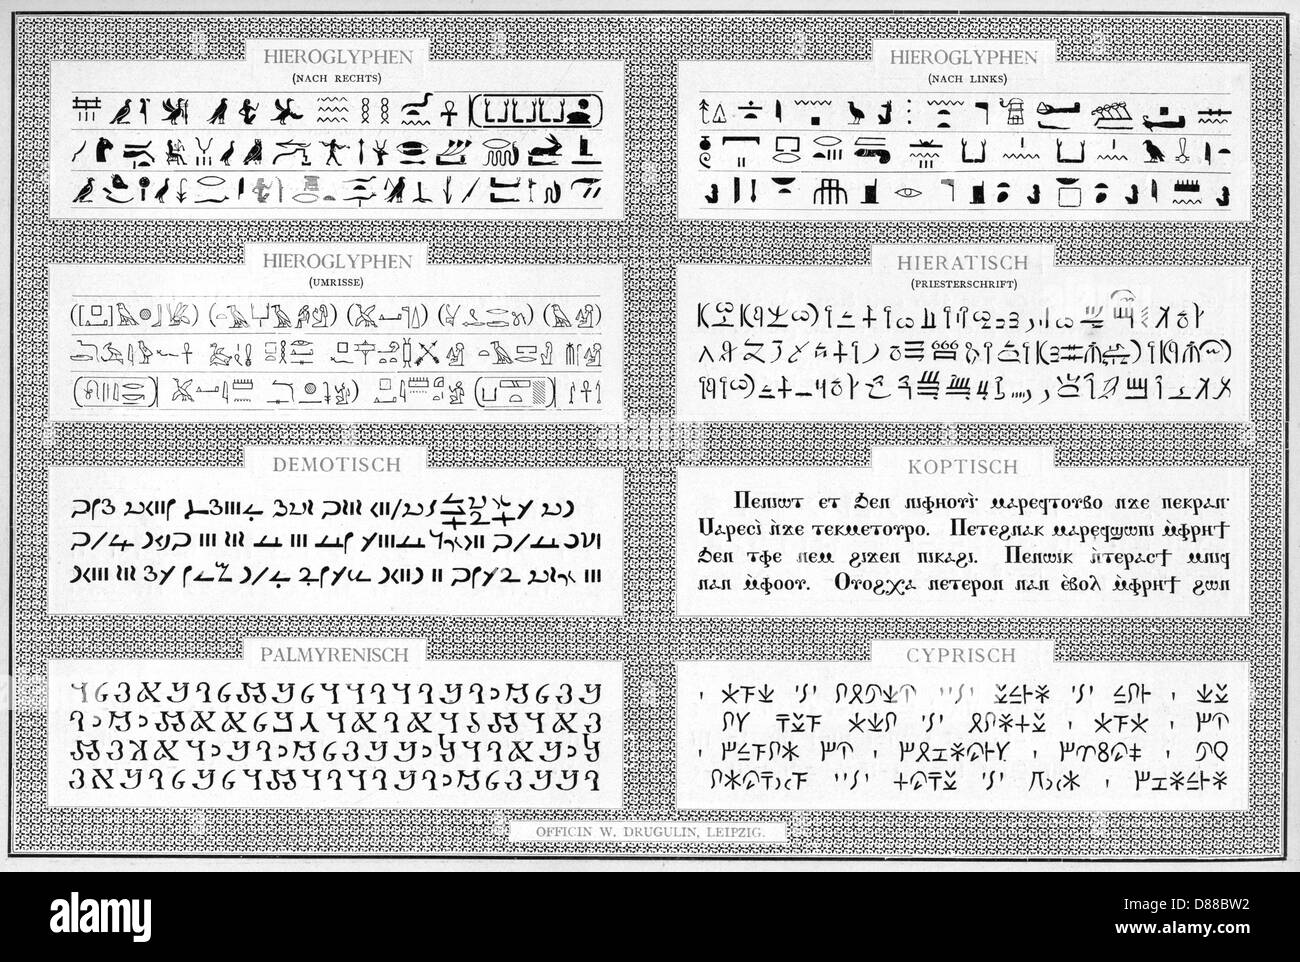 Ancient Scripts 2 - Stock Image